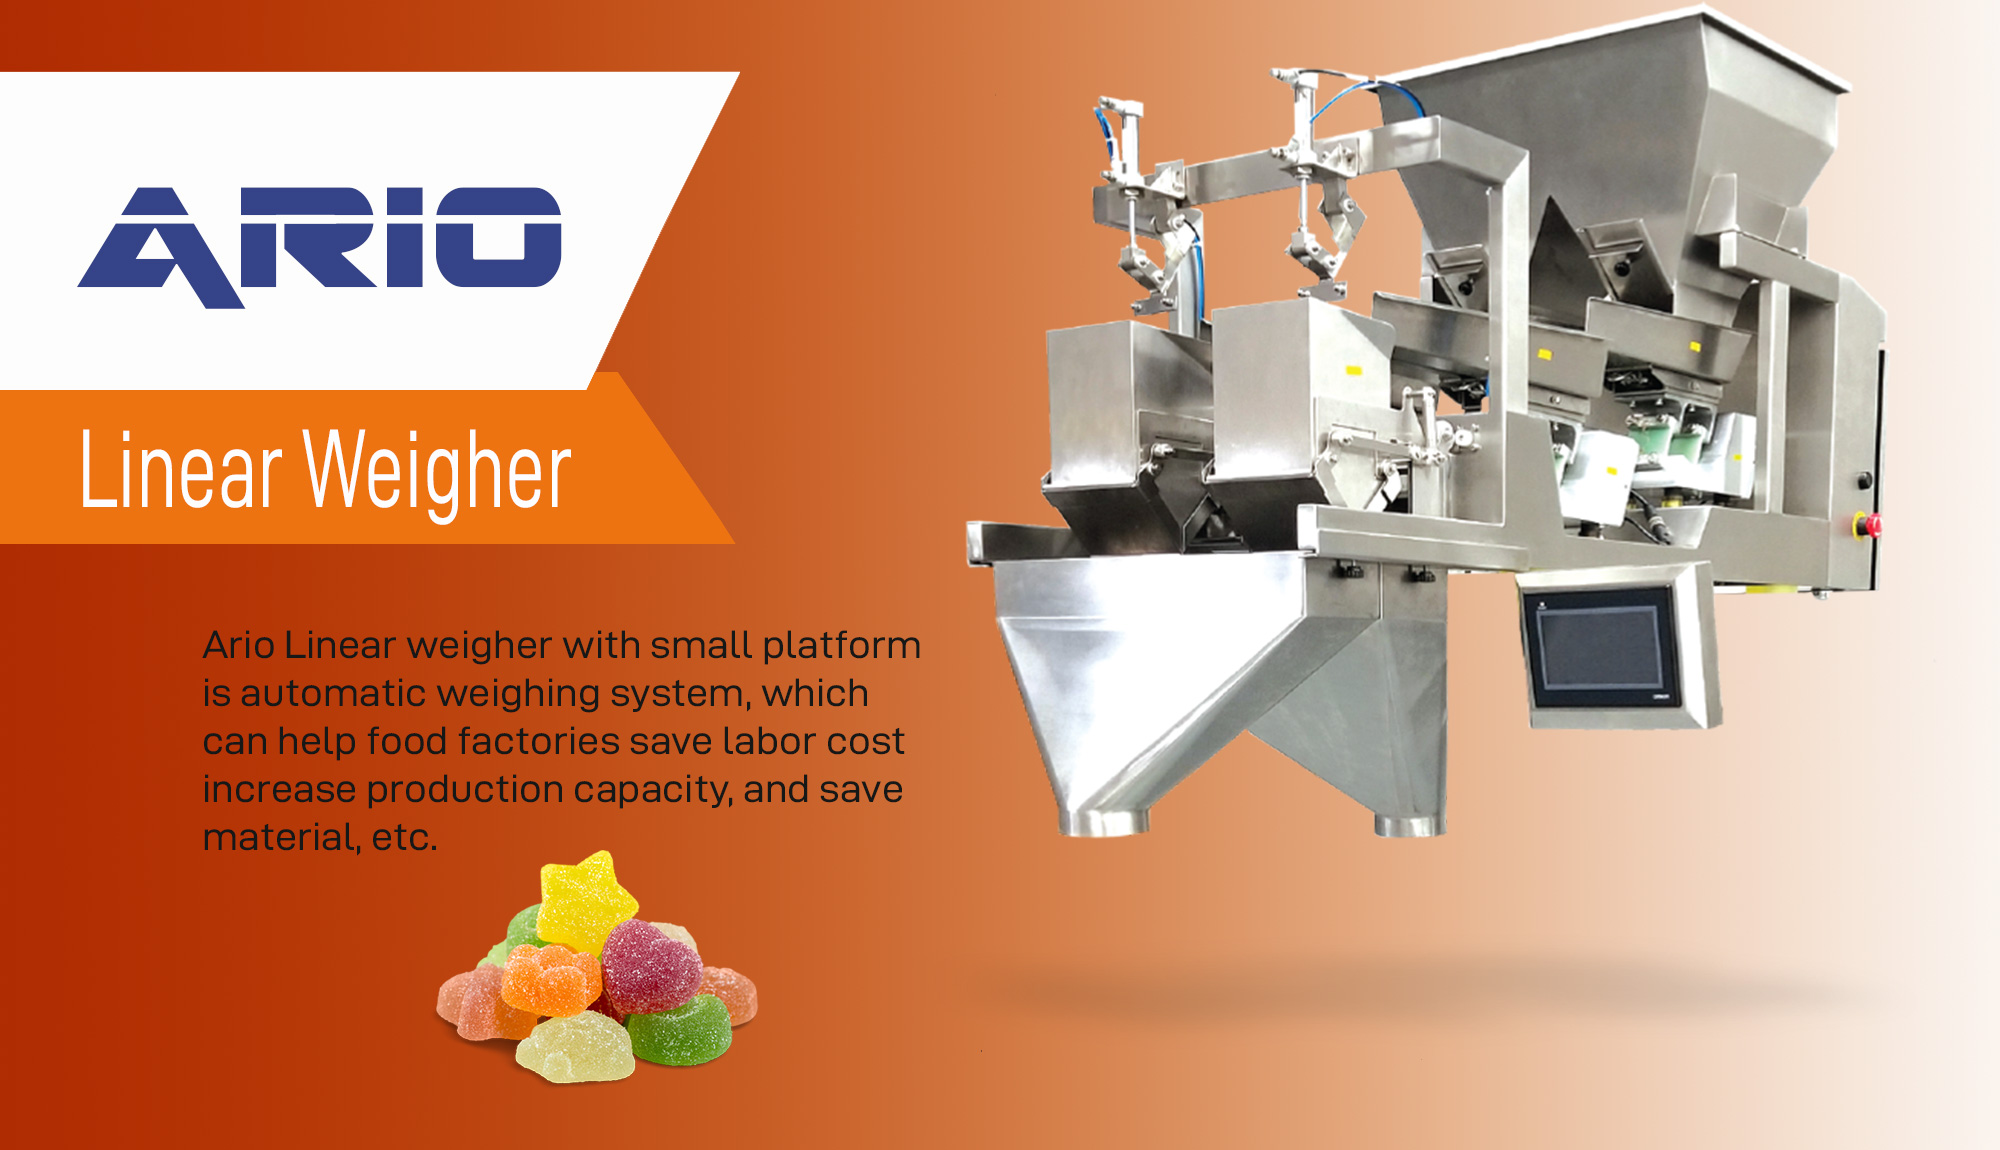 ario-linear-weigher